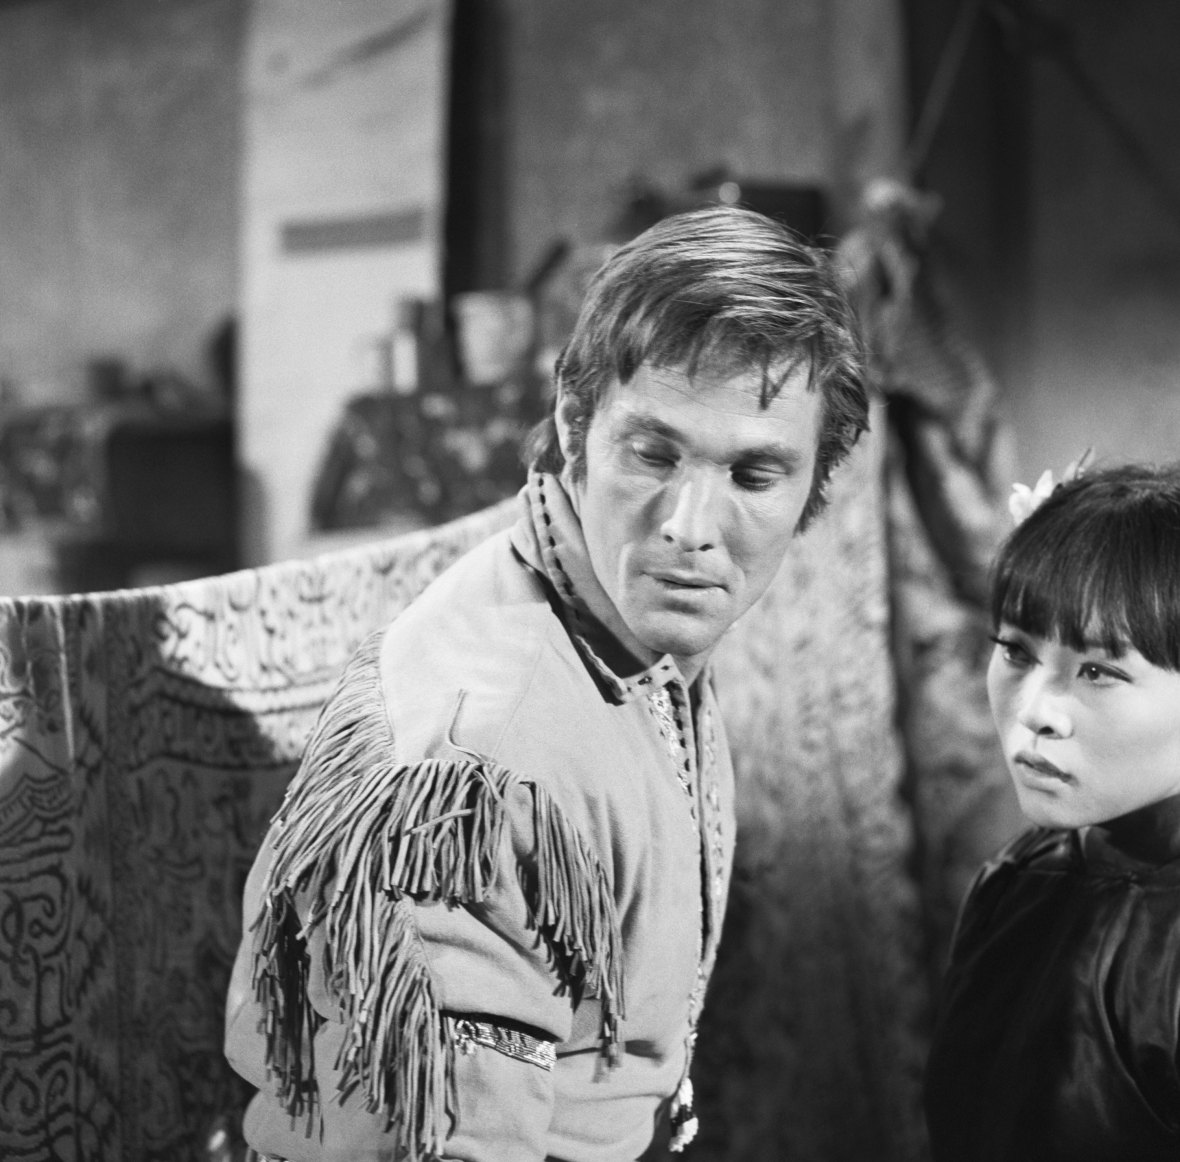 irene in 'laredo' in 1967 with william smith. (photo credit: getty images)